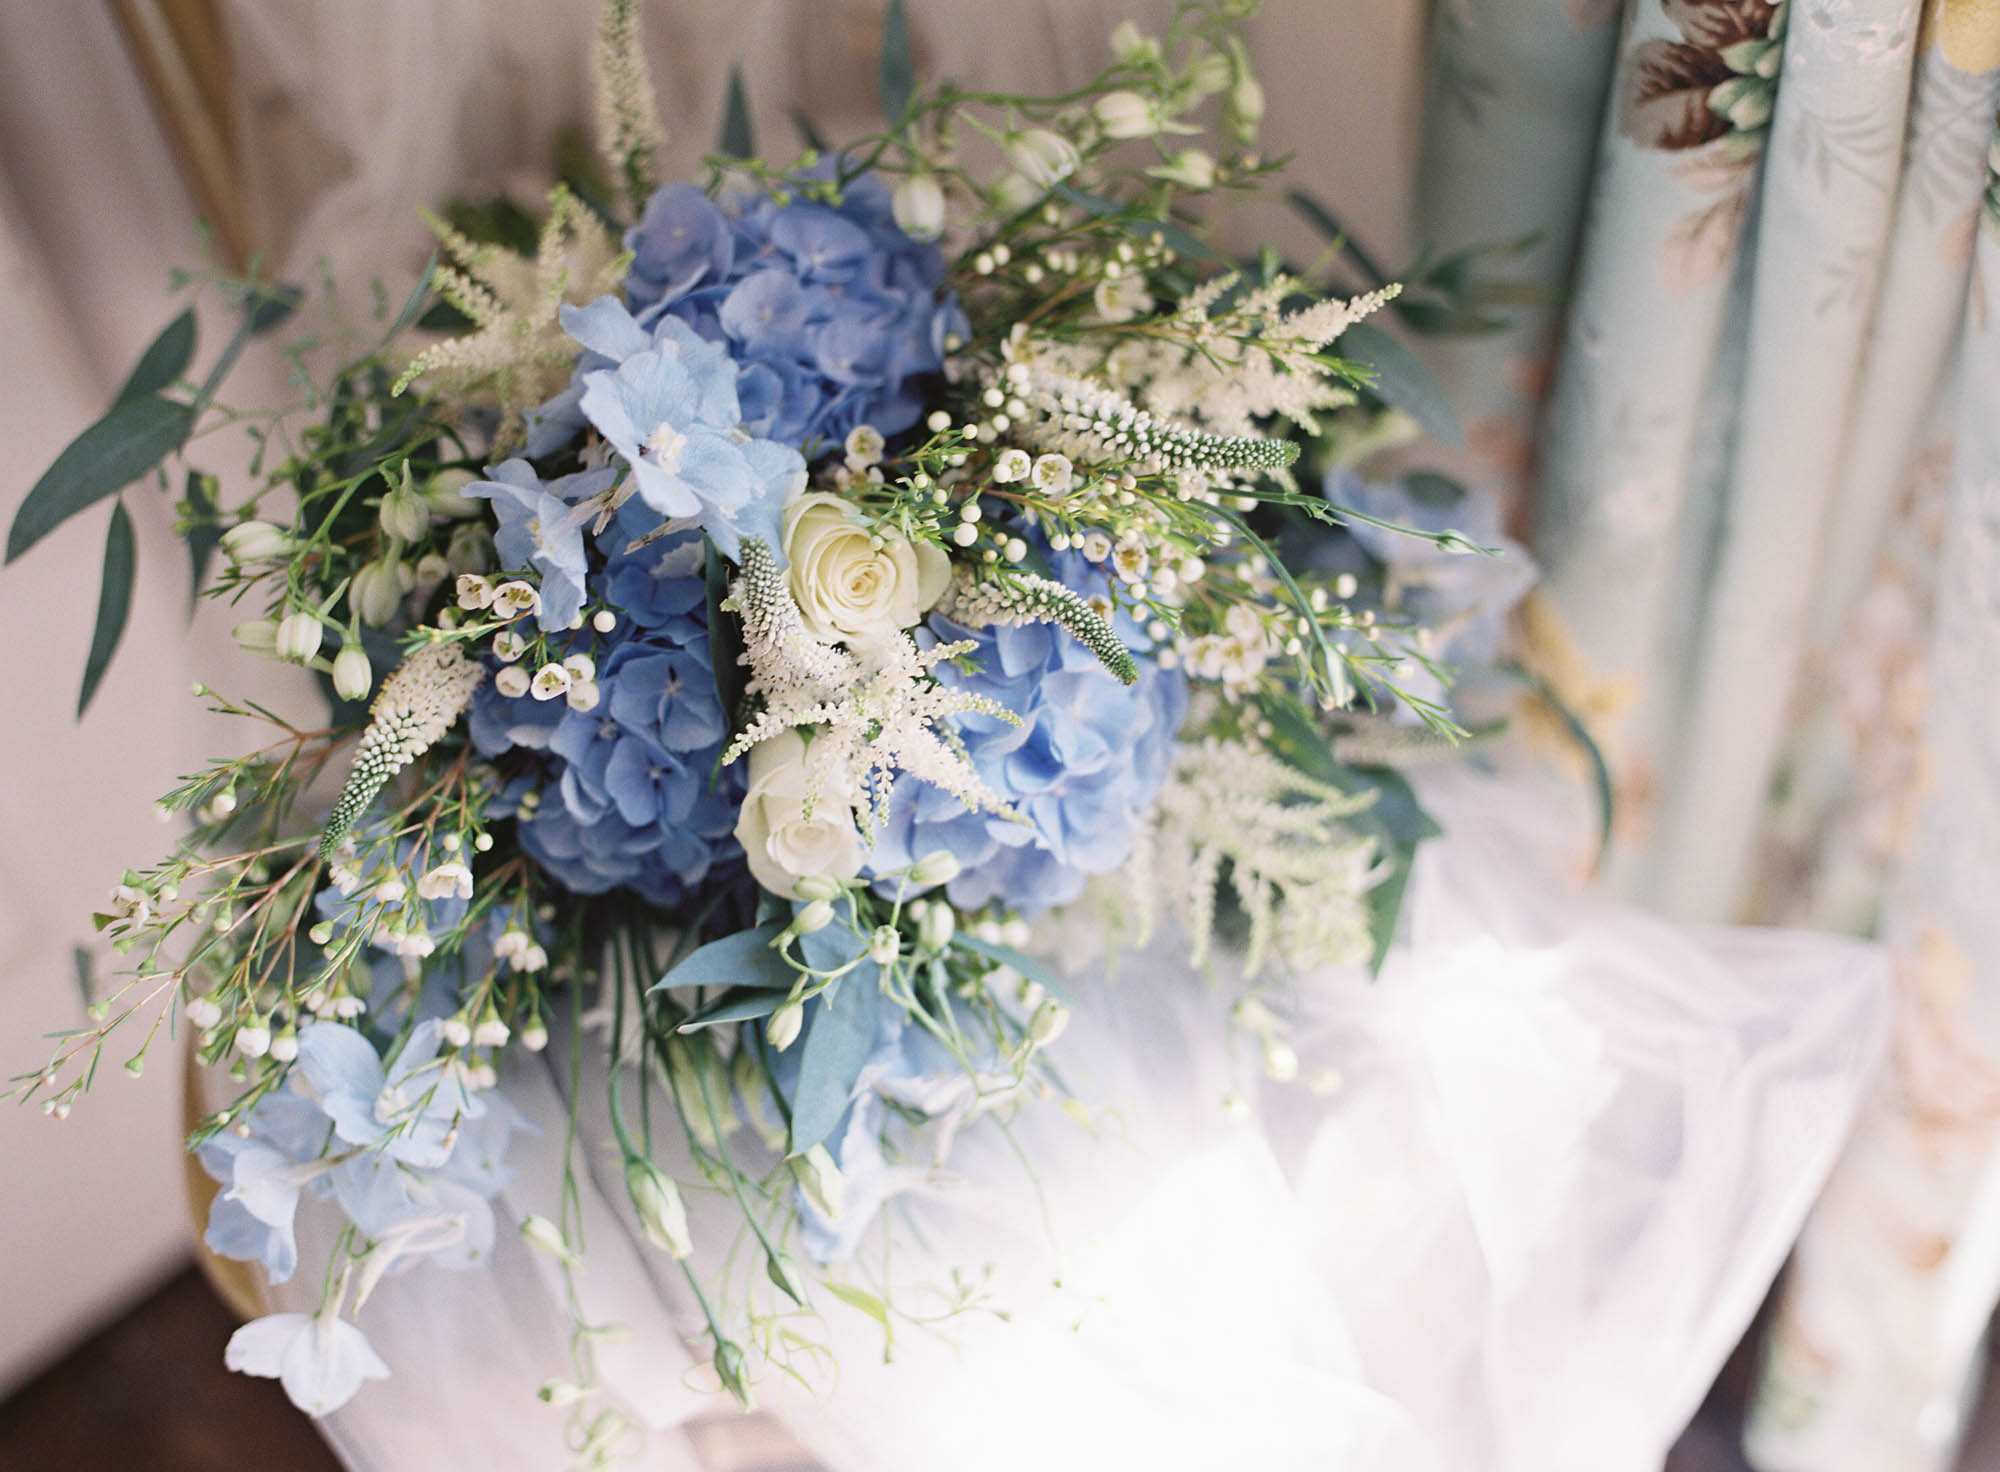 Blue, white and green natural wedding flowers on chair